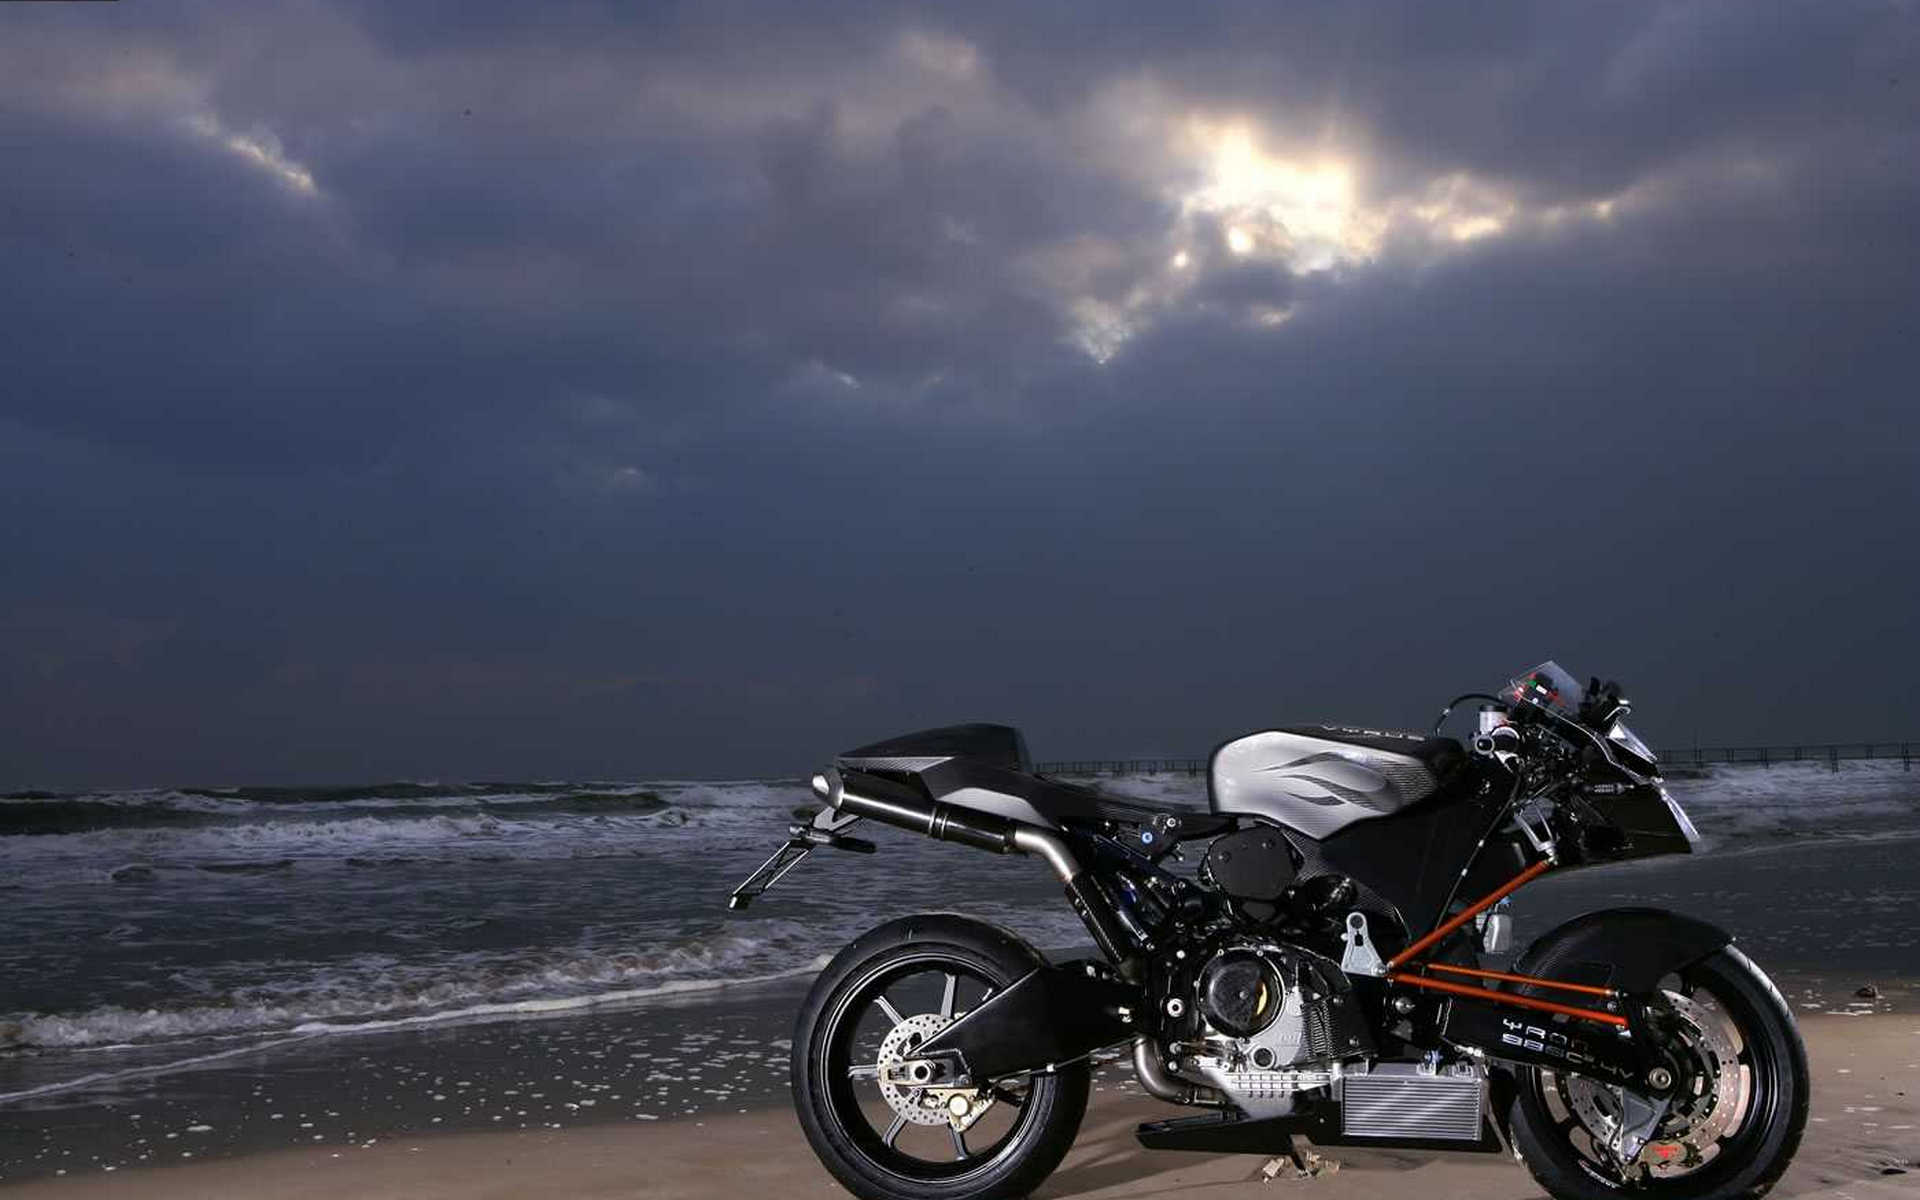 Hd Wallpapers Of Bikes For: Bikes HD Wallpapers